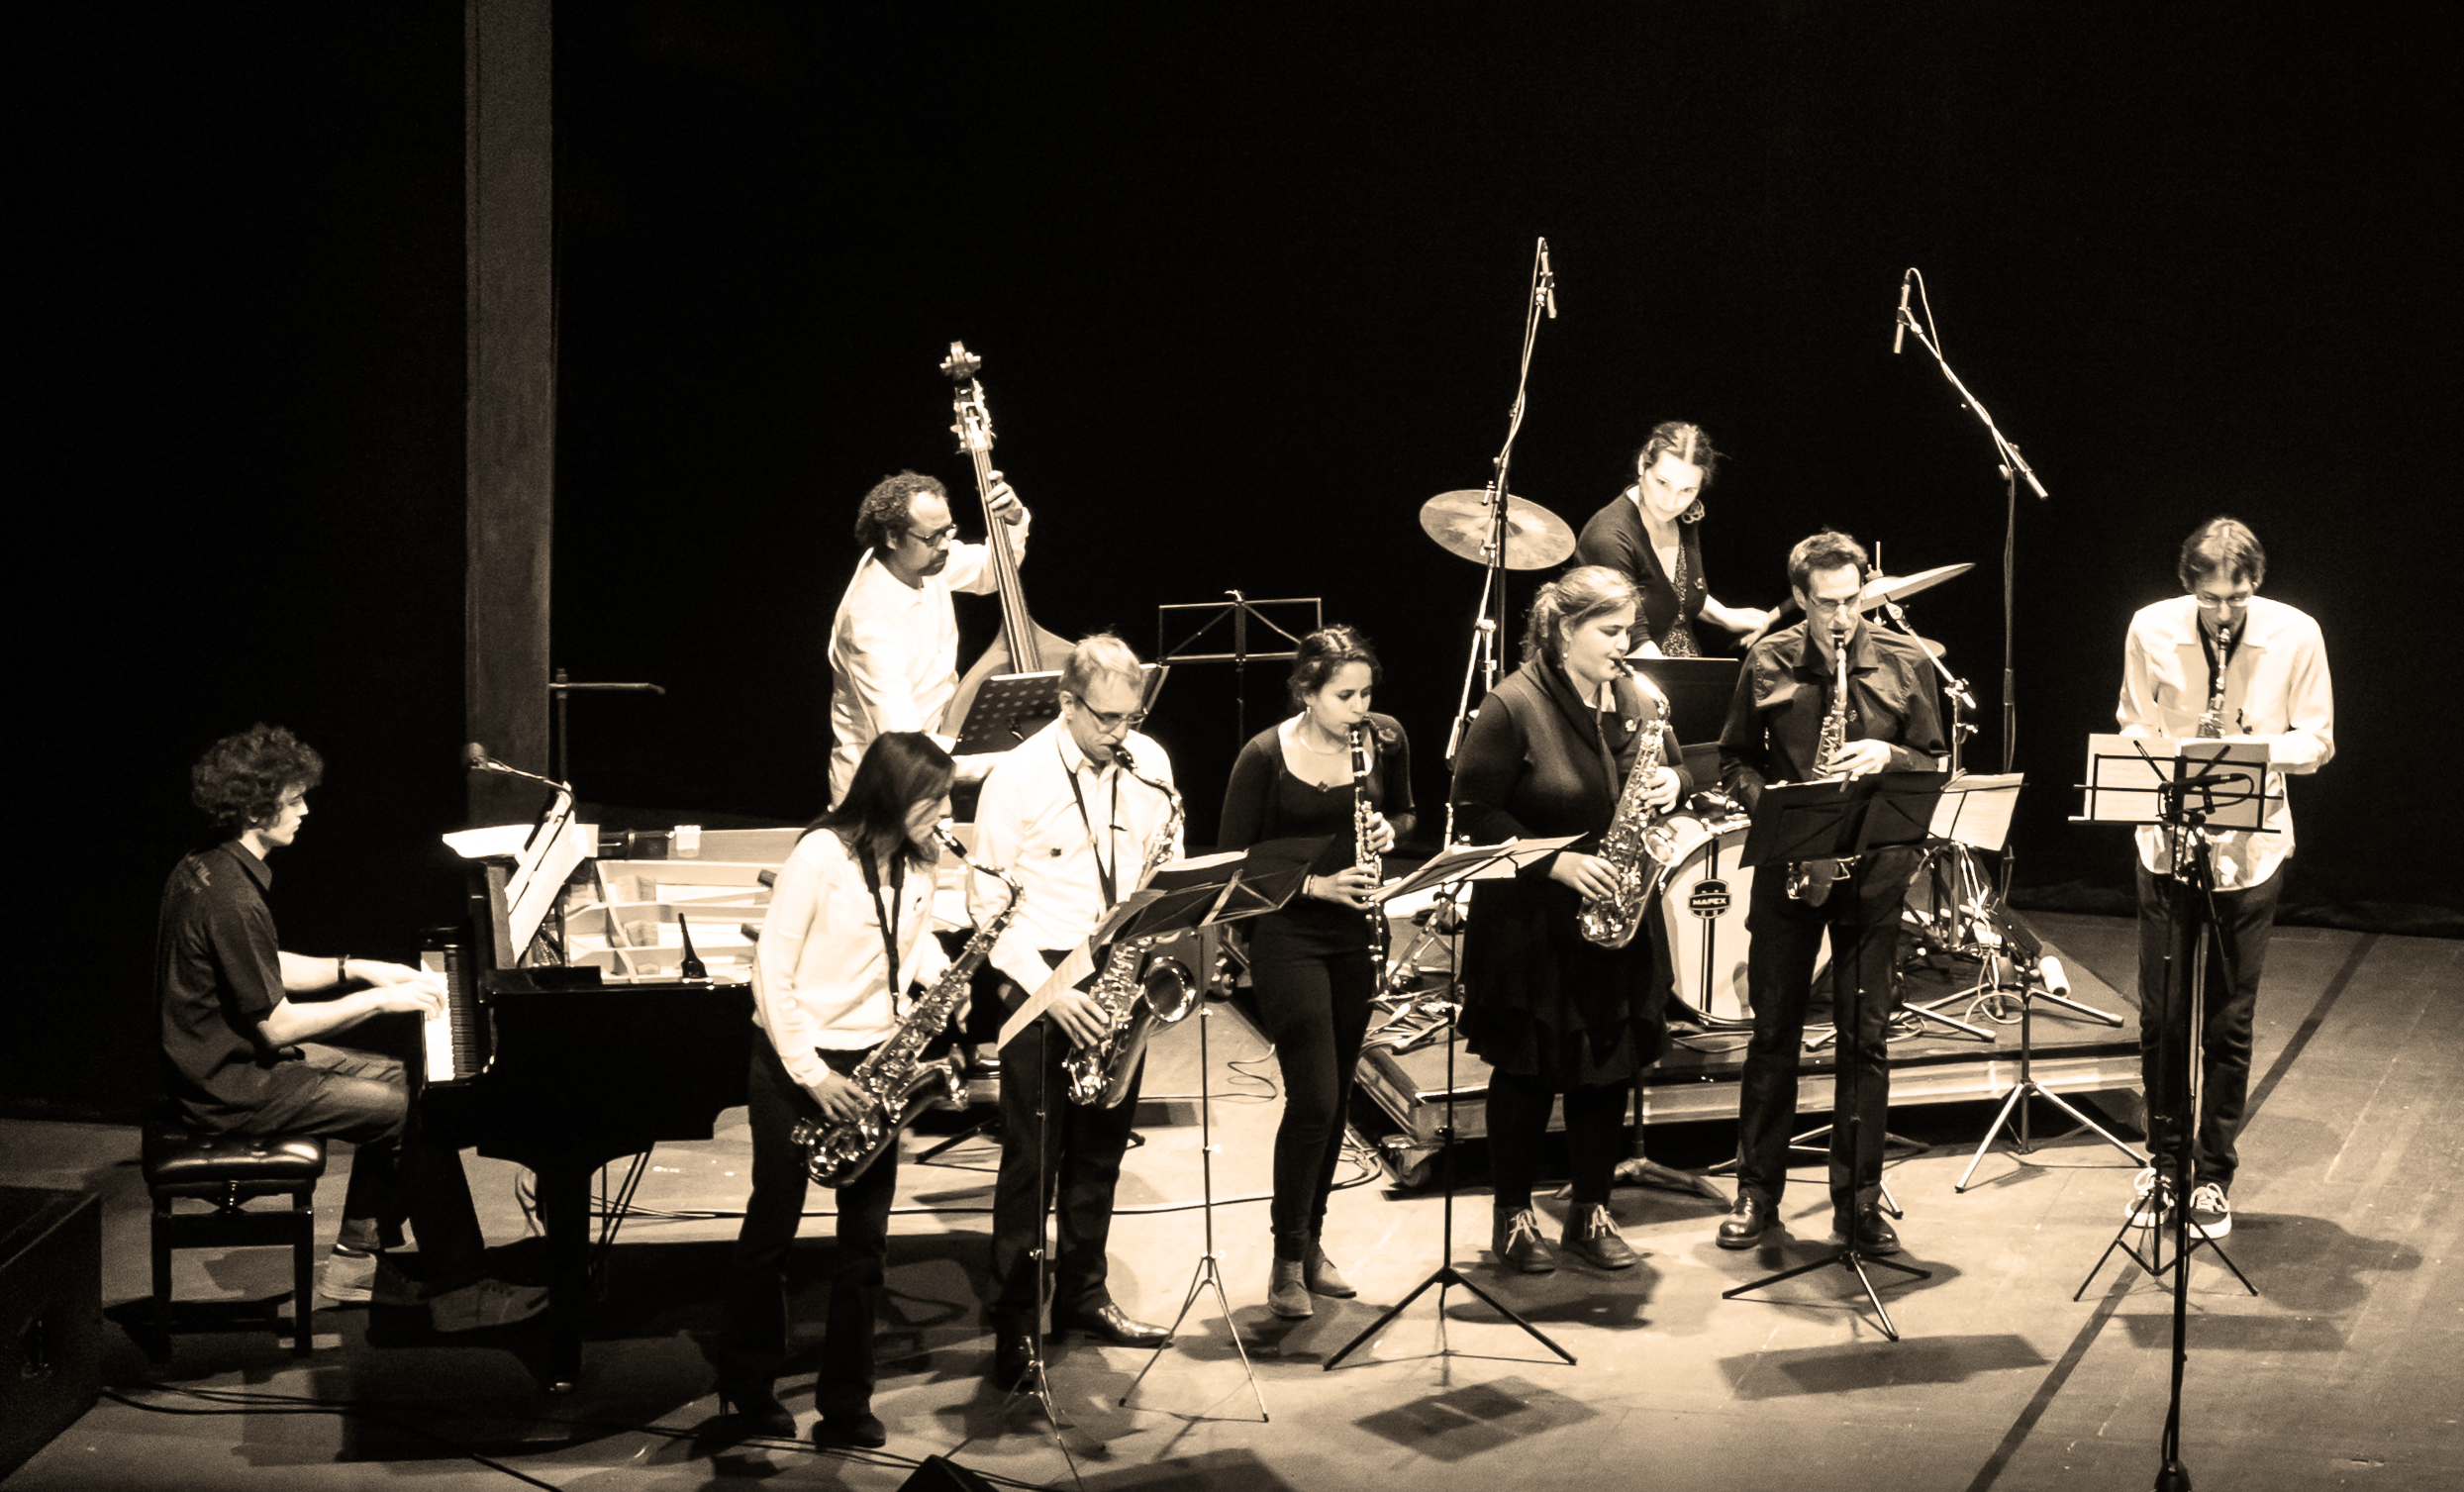 L'ensemble jazz de l'EMGC. Photo : famille Genty.